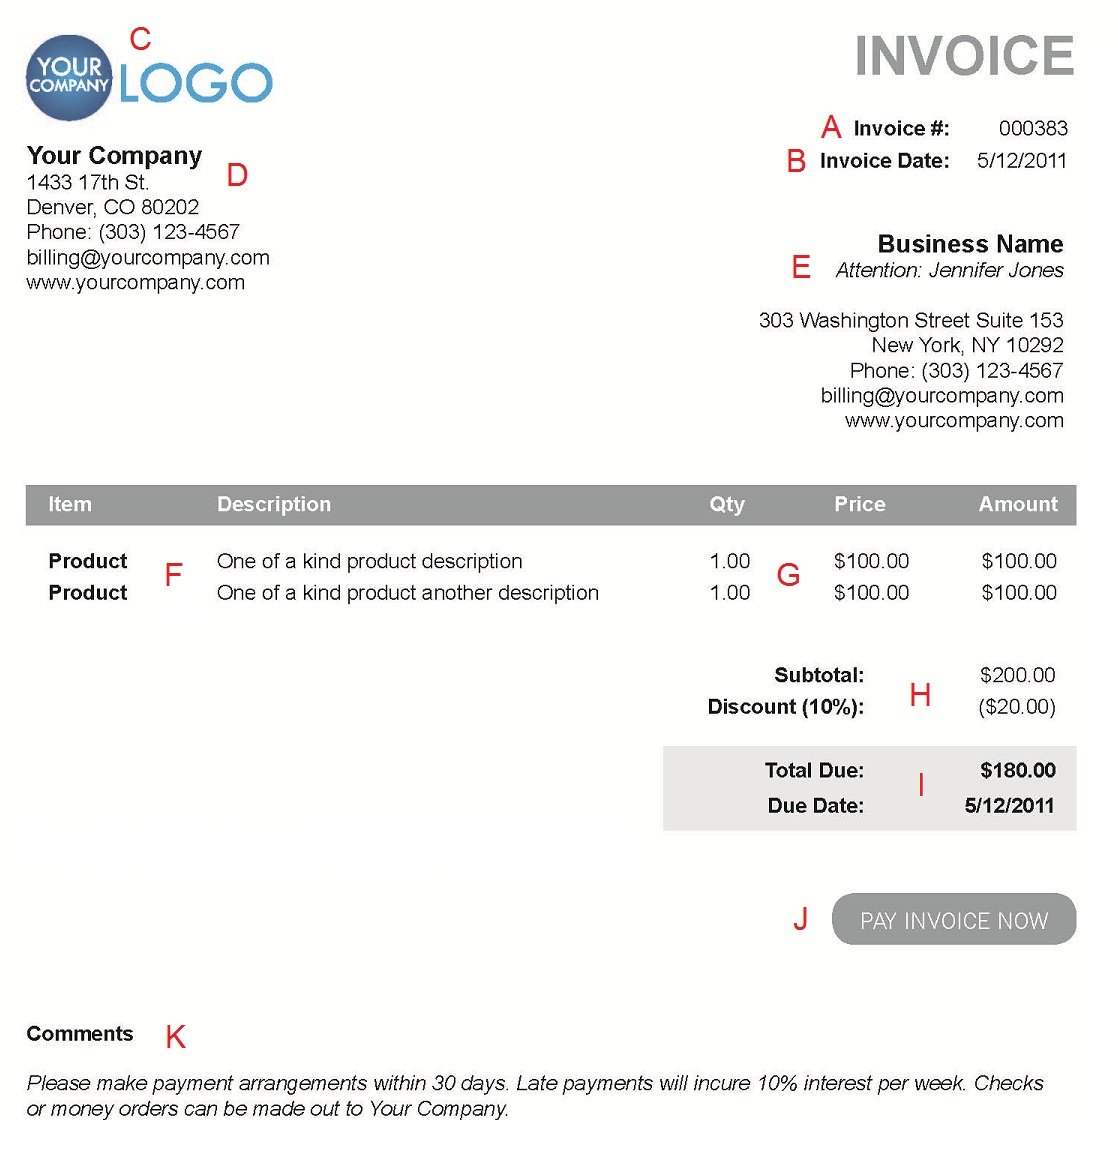 Angkajituus  Inspiring The  Different Sections Of An Electronic Payment Invoice With Great A  With Awesome Canada Customs Invoice Template Also Simple Invoice Maker In Addition Express Invoicing And Freight Invoices As Well As Best Software For Invoices Additionally How To Draft An Invoice From Paysimplecom With Angkajituus  Great The  Different Sections Of An Electronic Payment Invoice With Awesome A  And Inspiring Canada Customs Invoice Template Also Simple Invoice Maker In Addition Express Invoicing From Paysimplecom